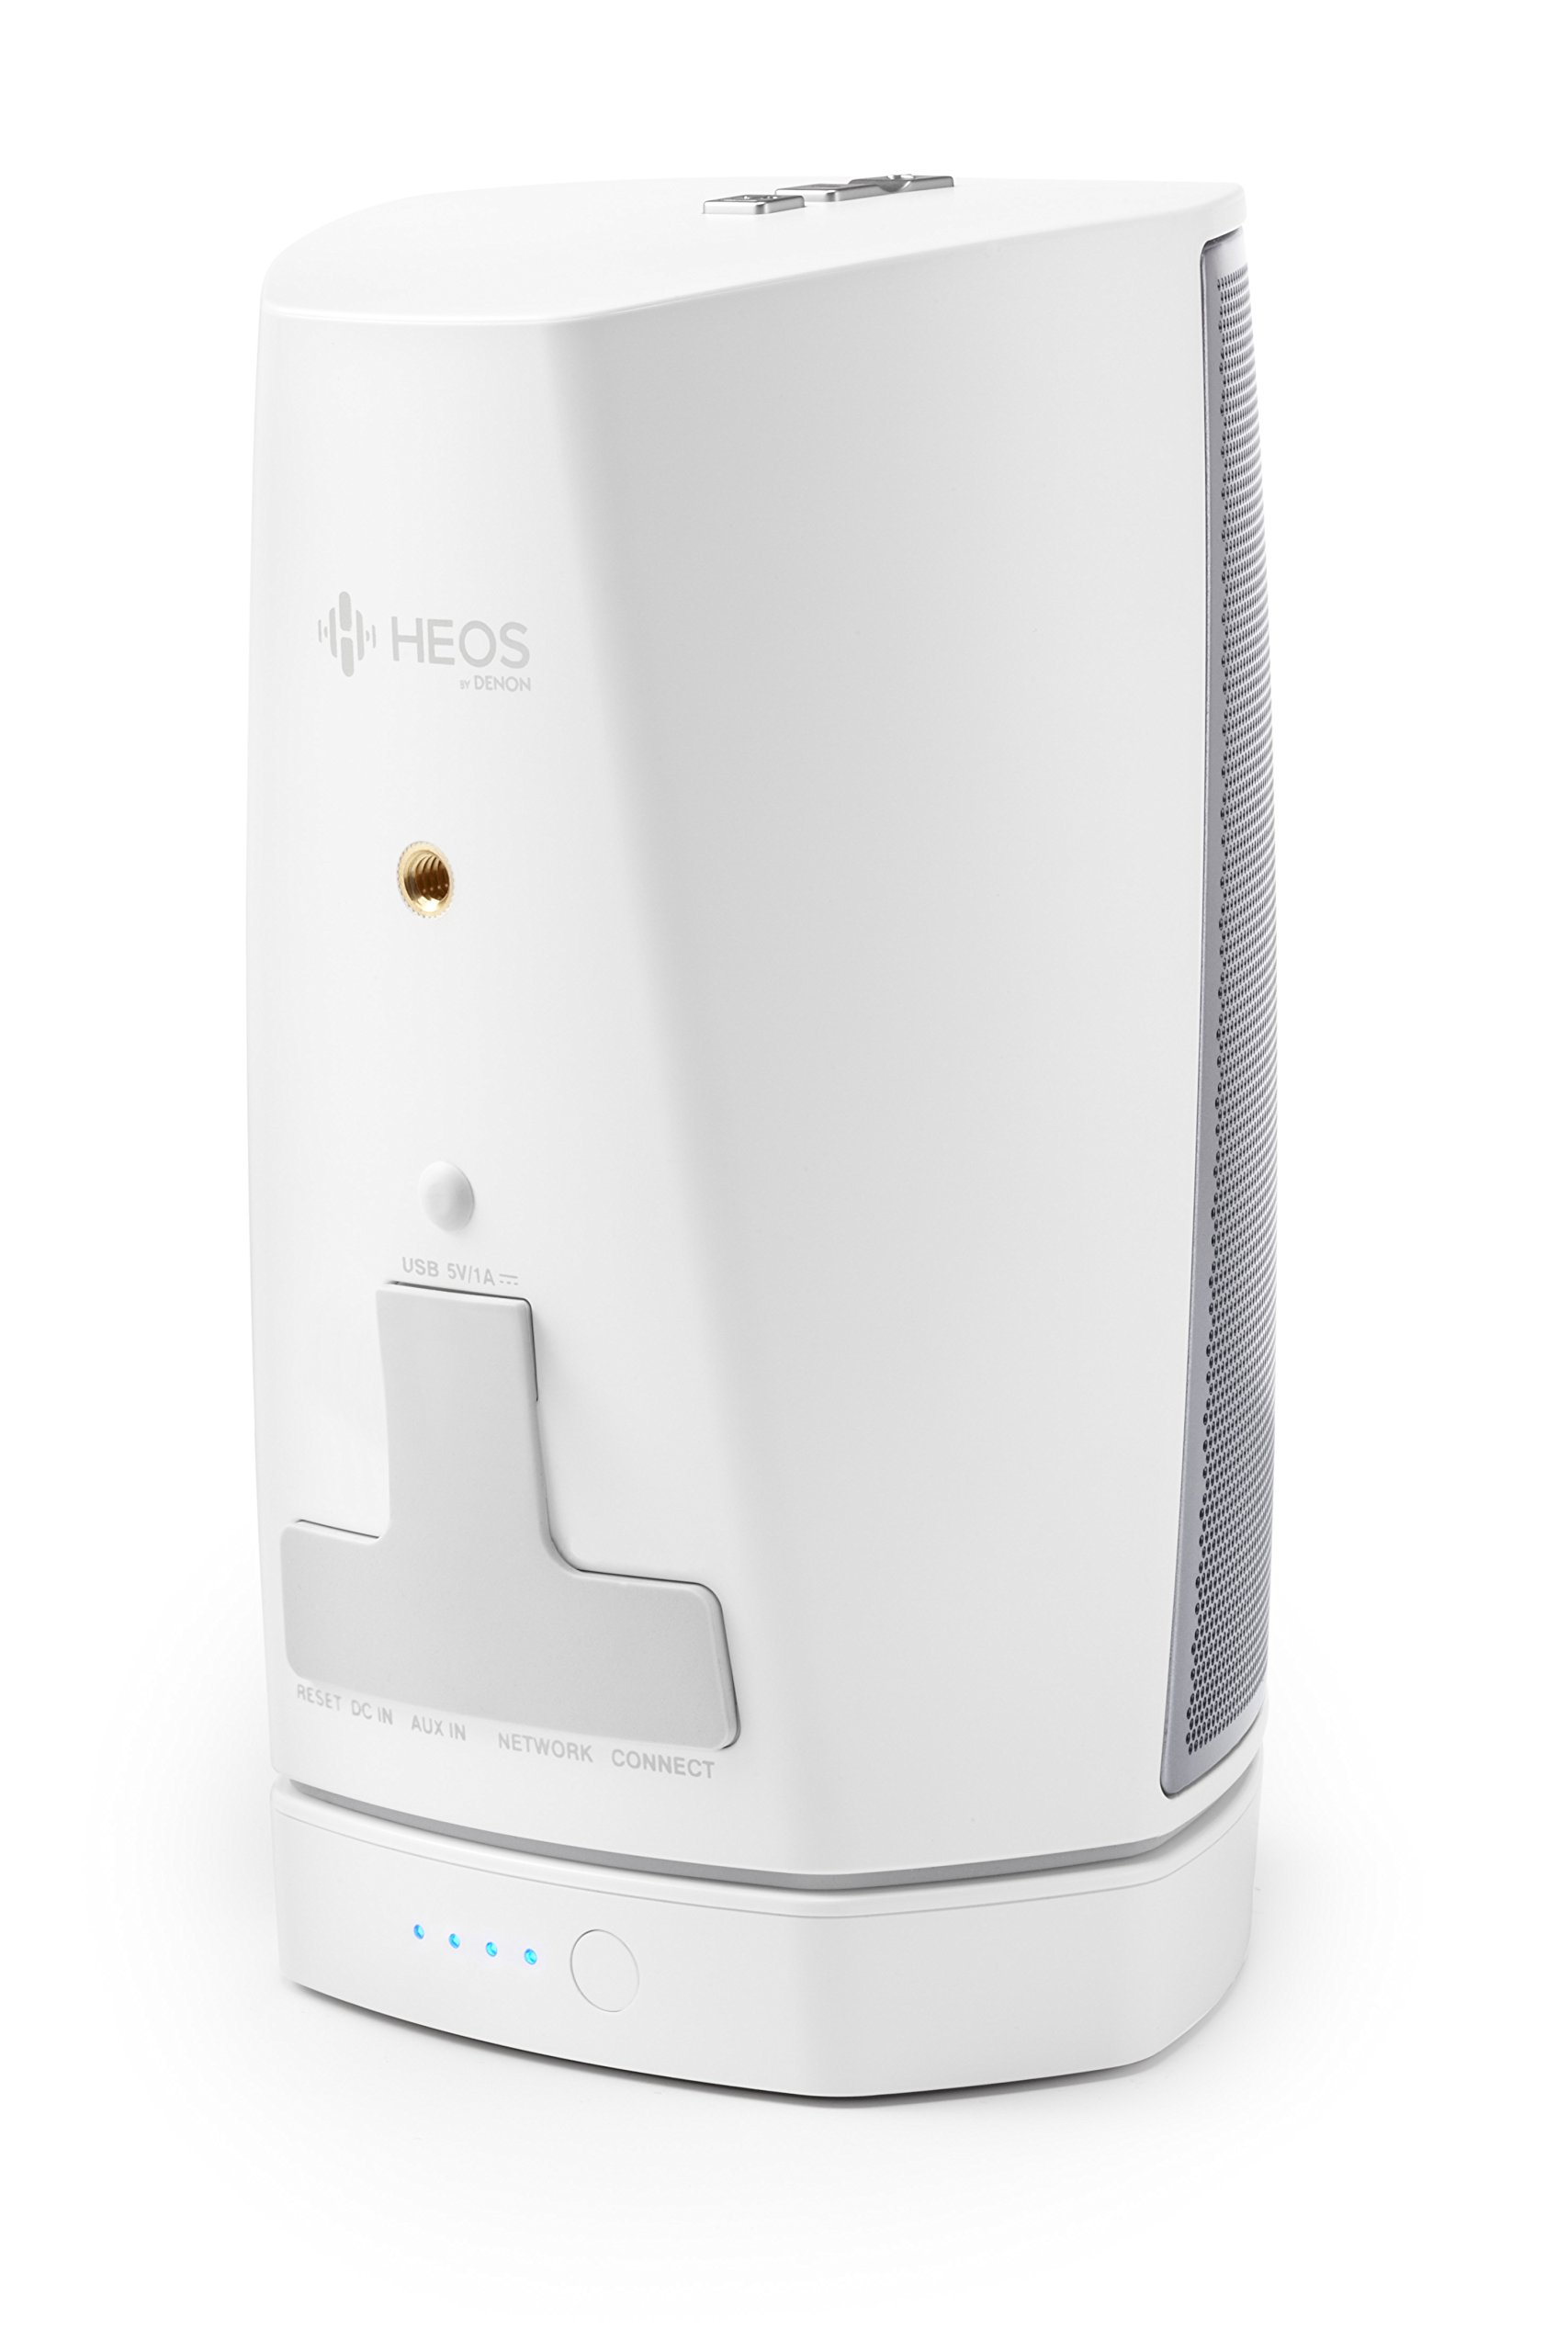 Denon HEOS1GOPACKHS2WT GO Pack Wireless Audio System Adapter New Version White by Denon (Image #6)